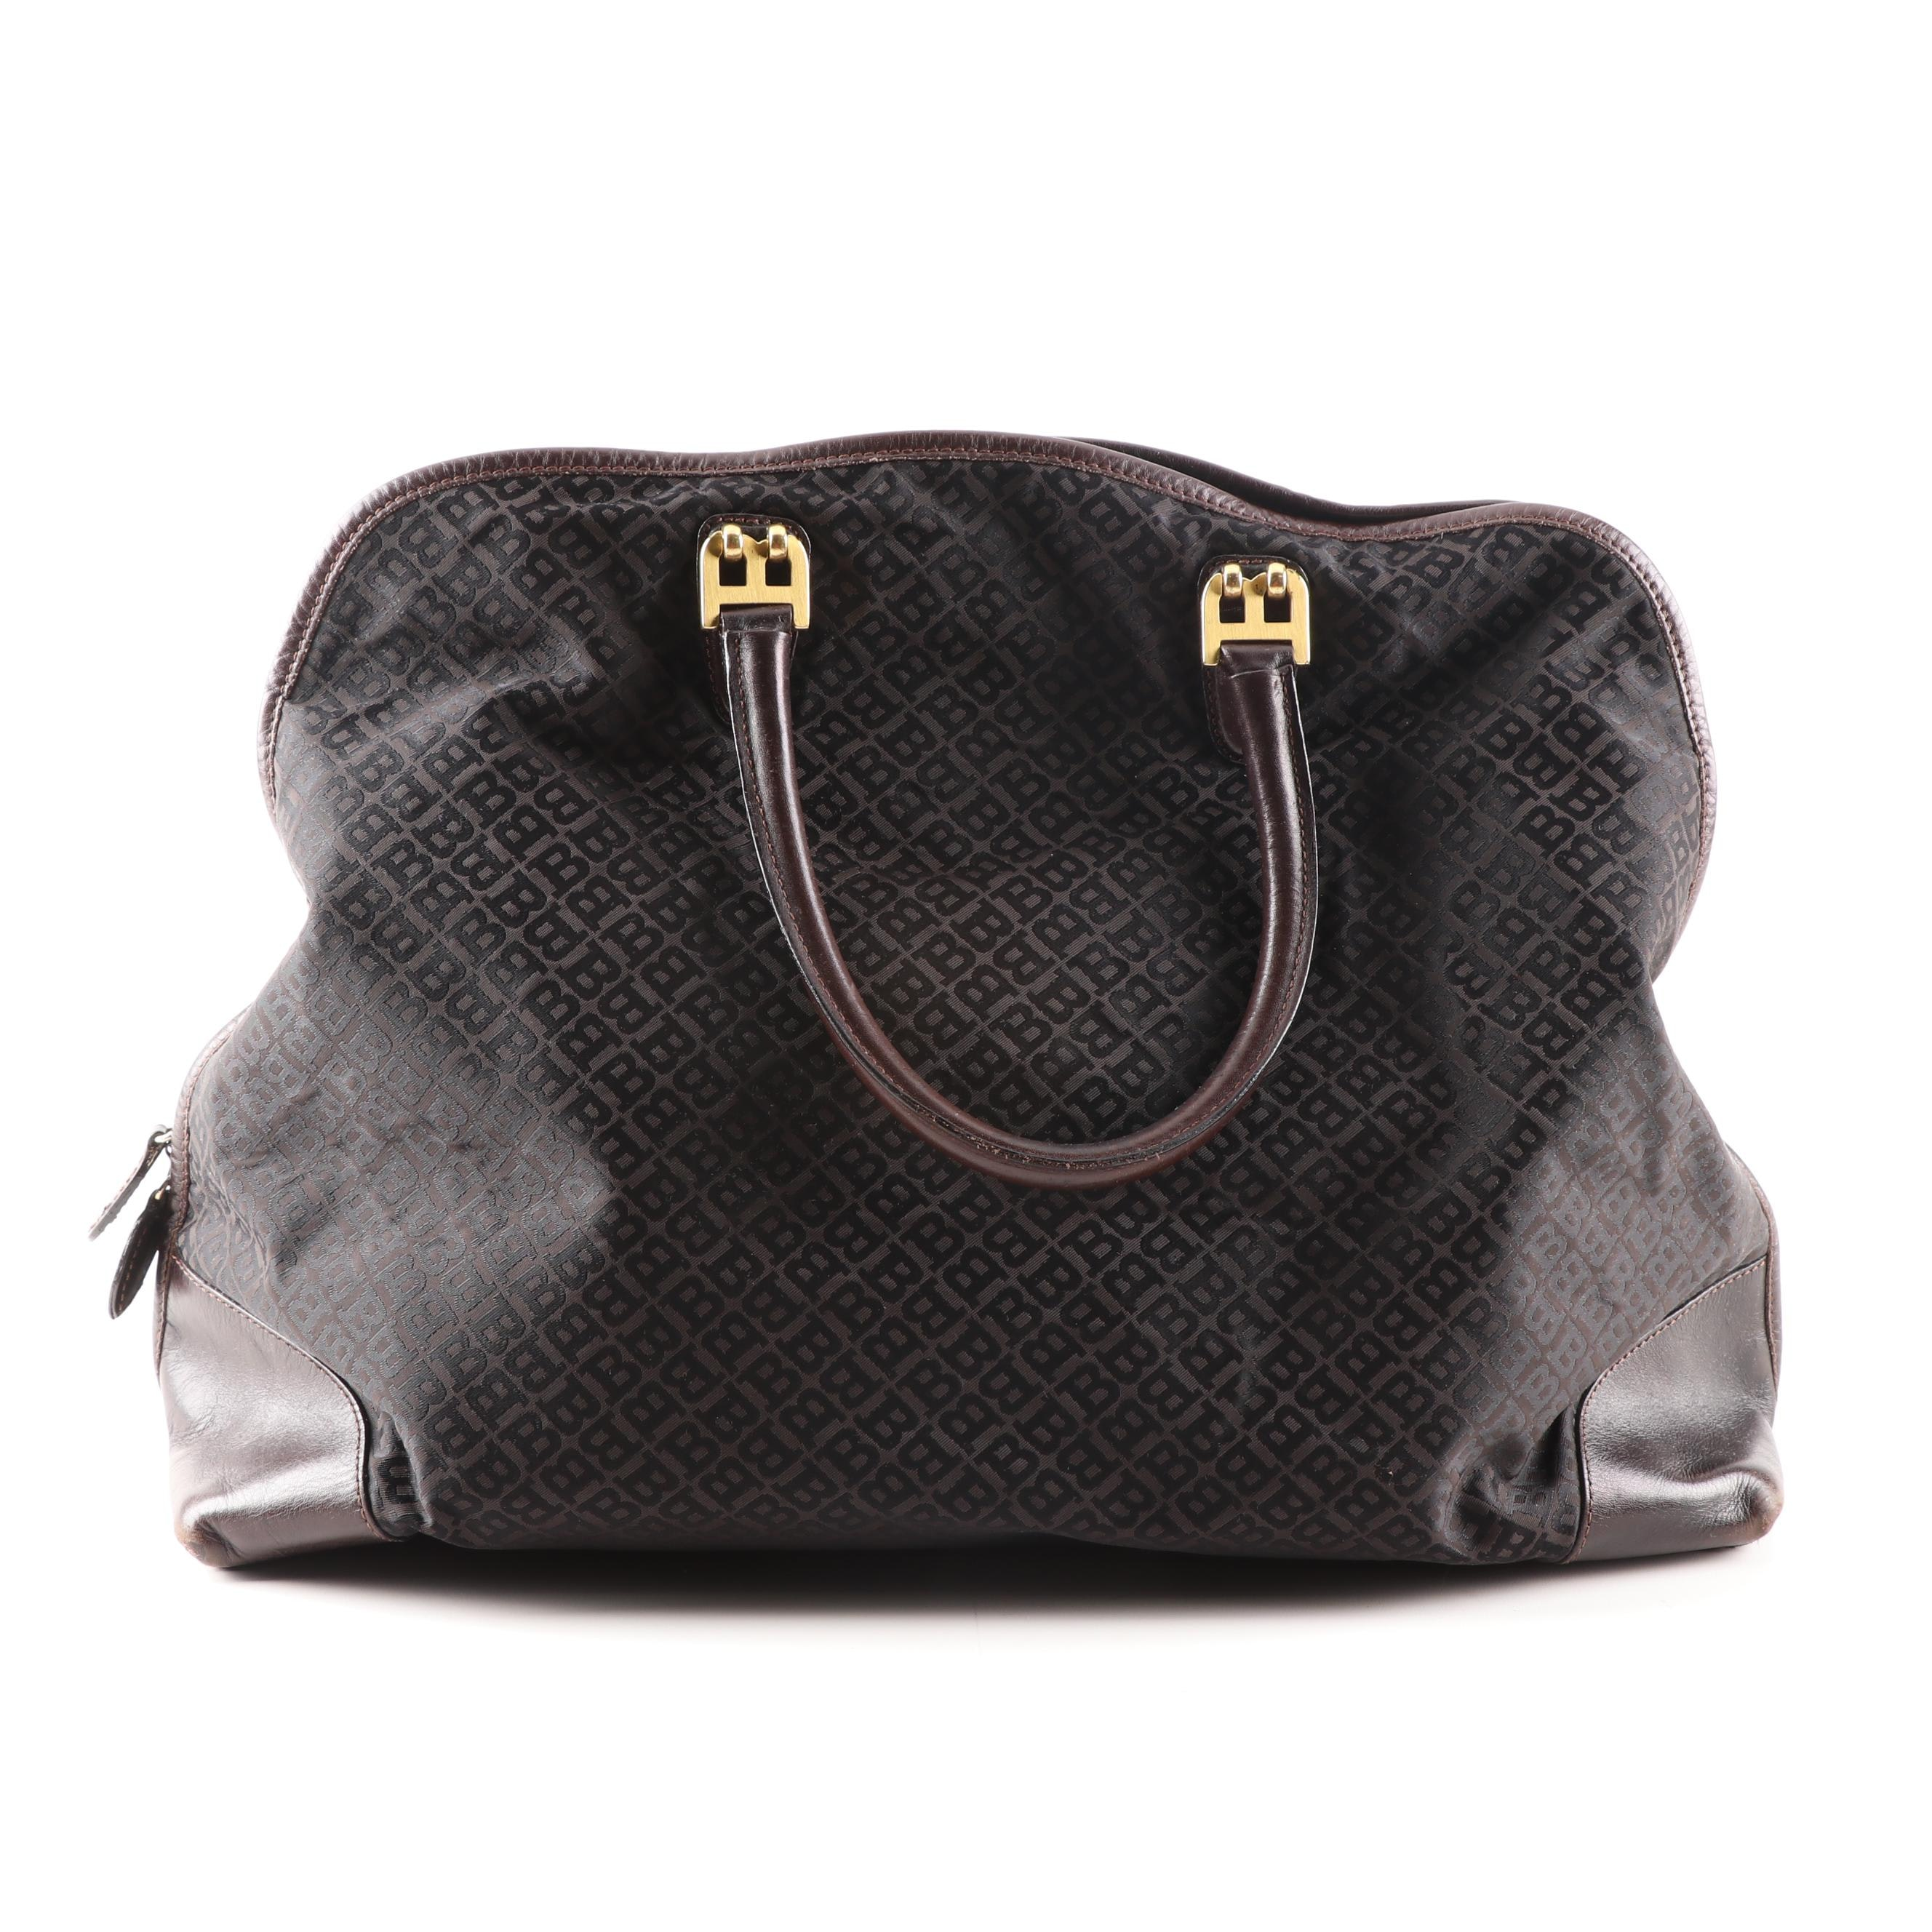 Bally Brown Jacquard Canvas and Leather Tote